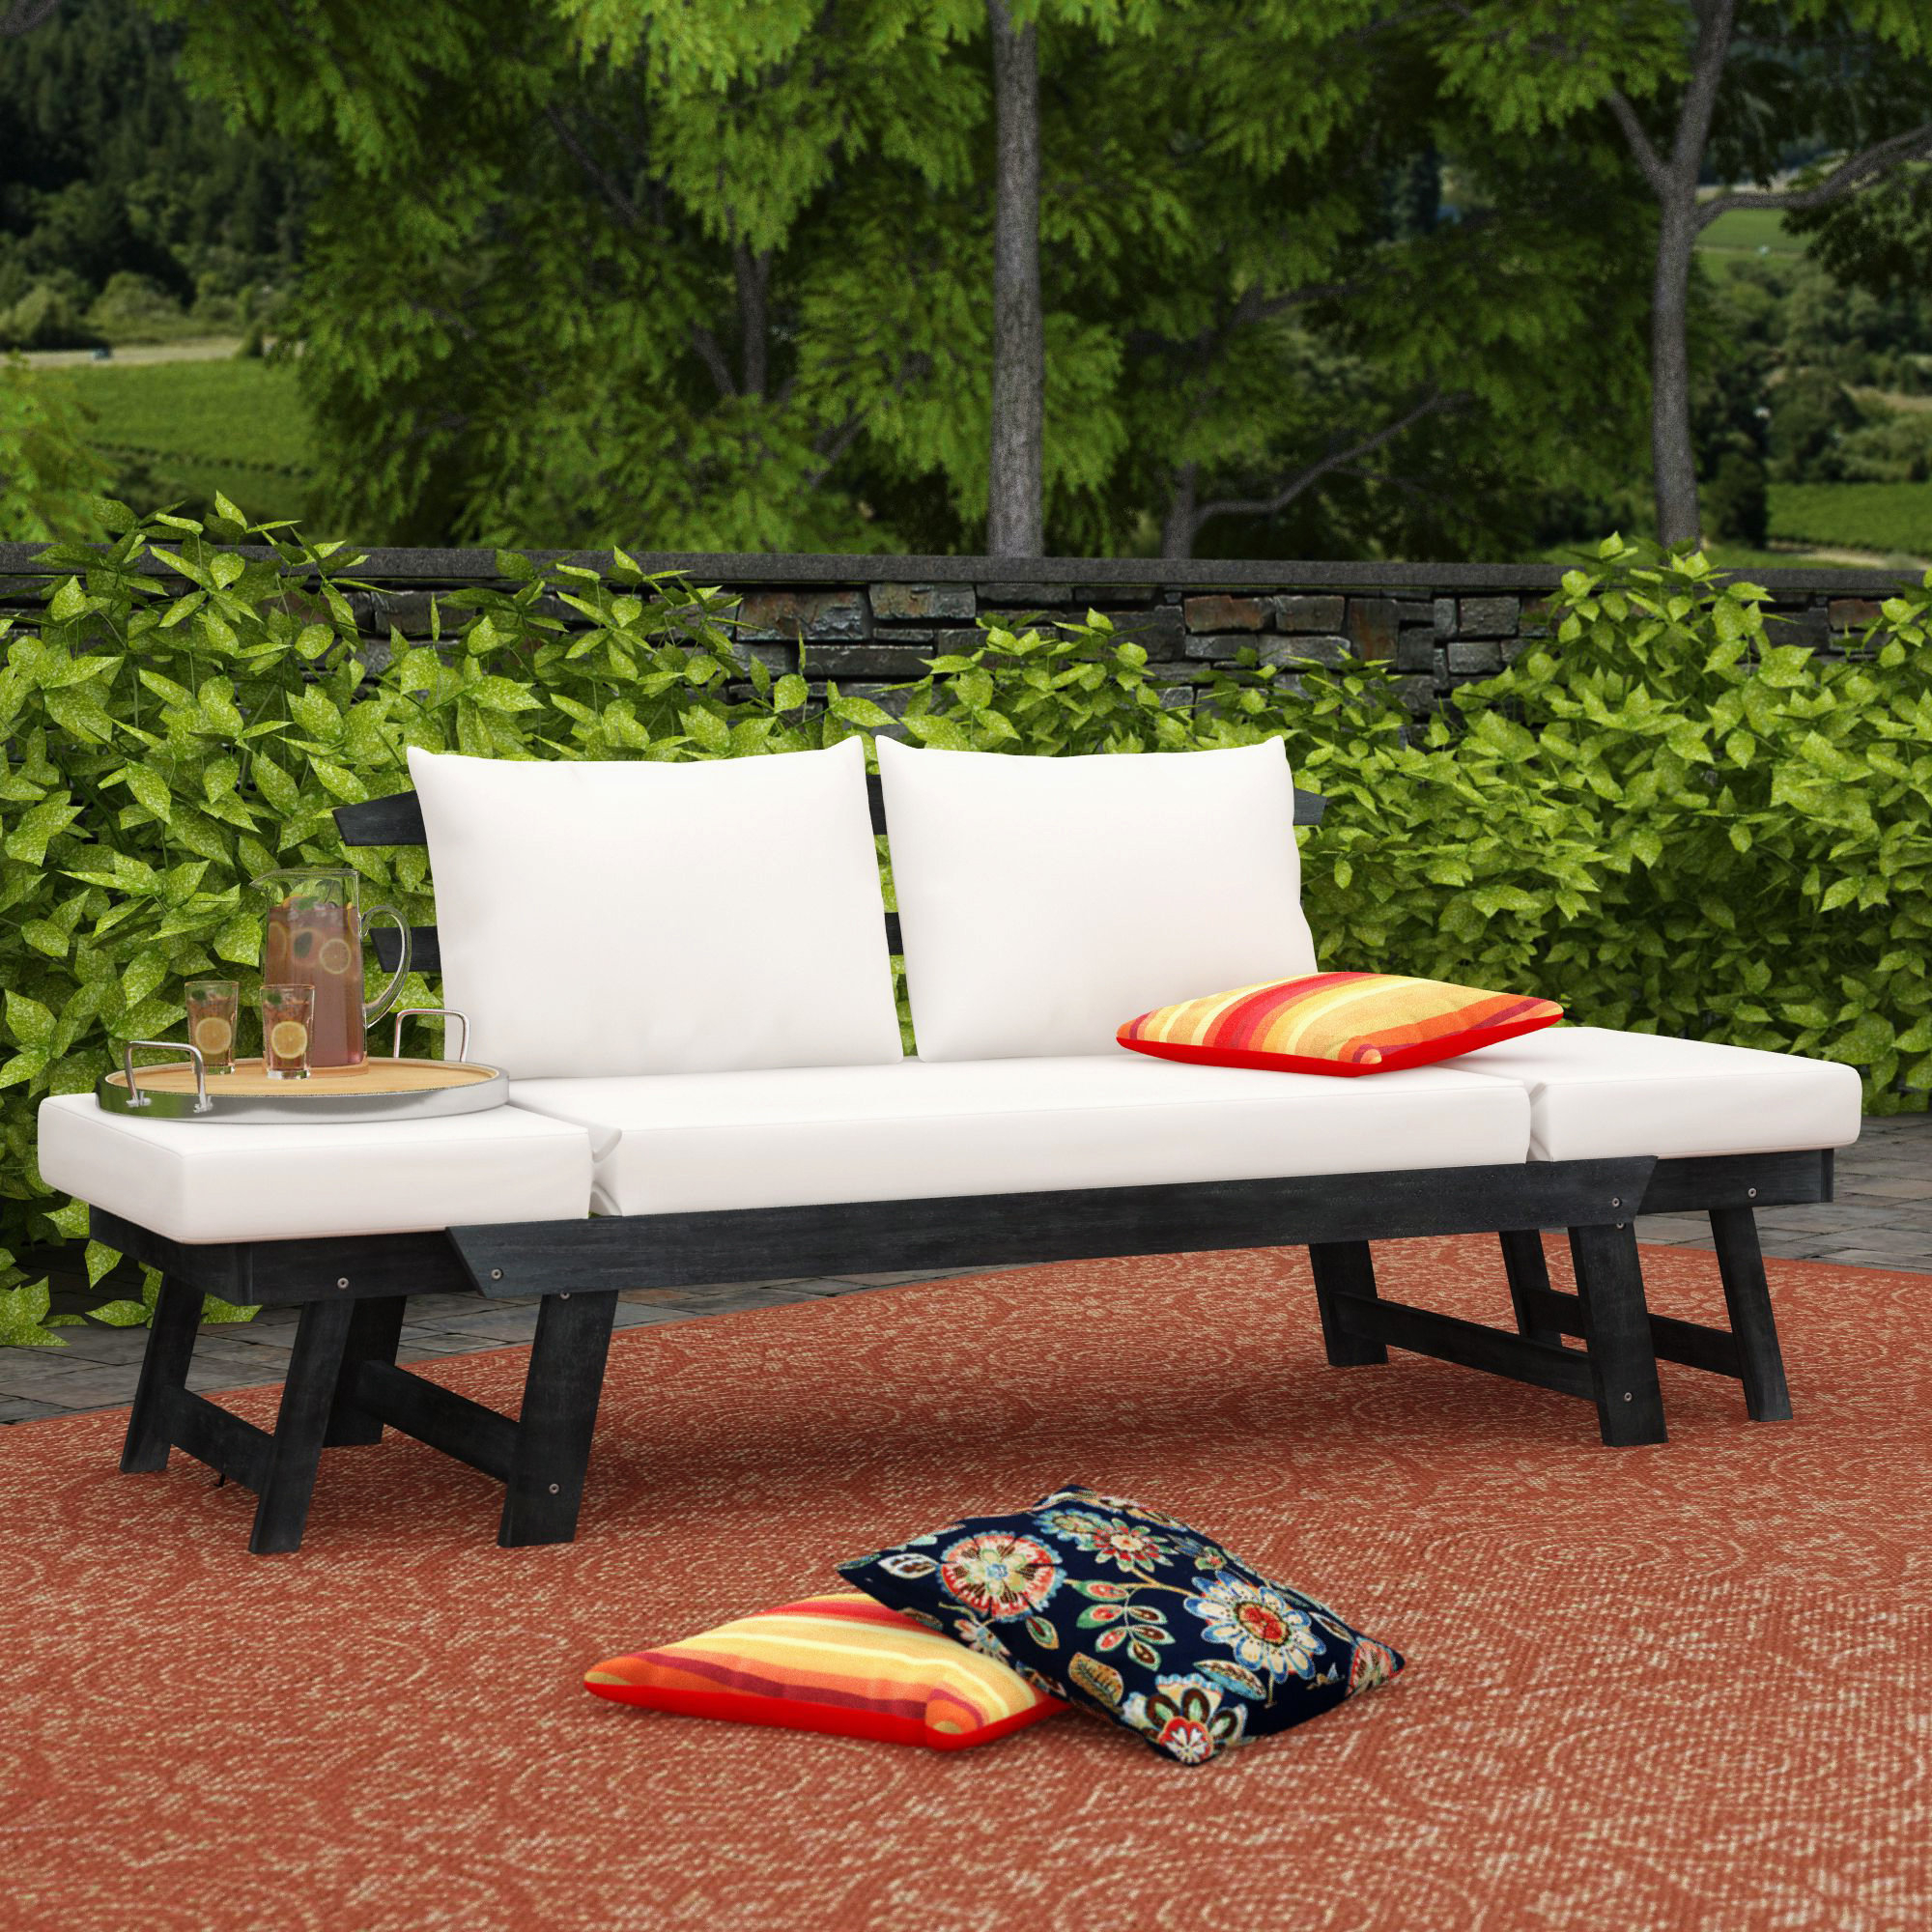 Beal Patio Daybed With Cushions With Most Popular Beal Patio Daybeds With Cushions (View 3 of 25)